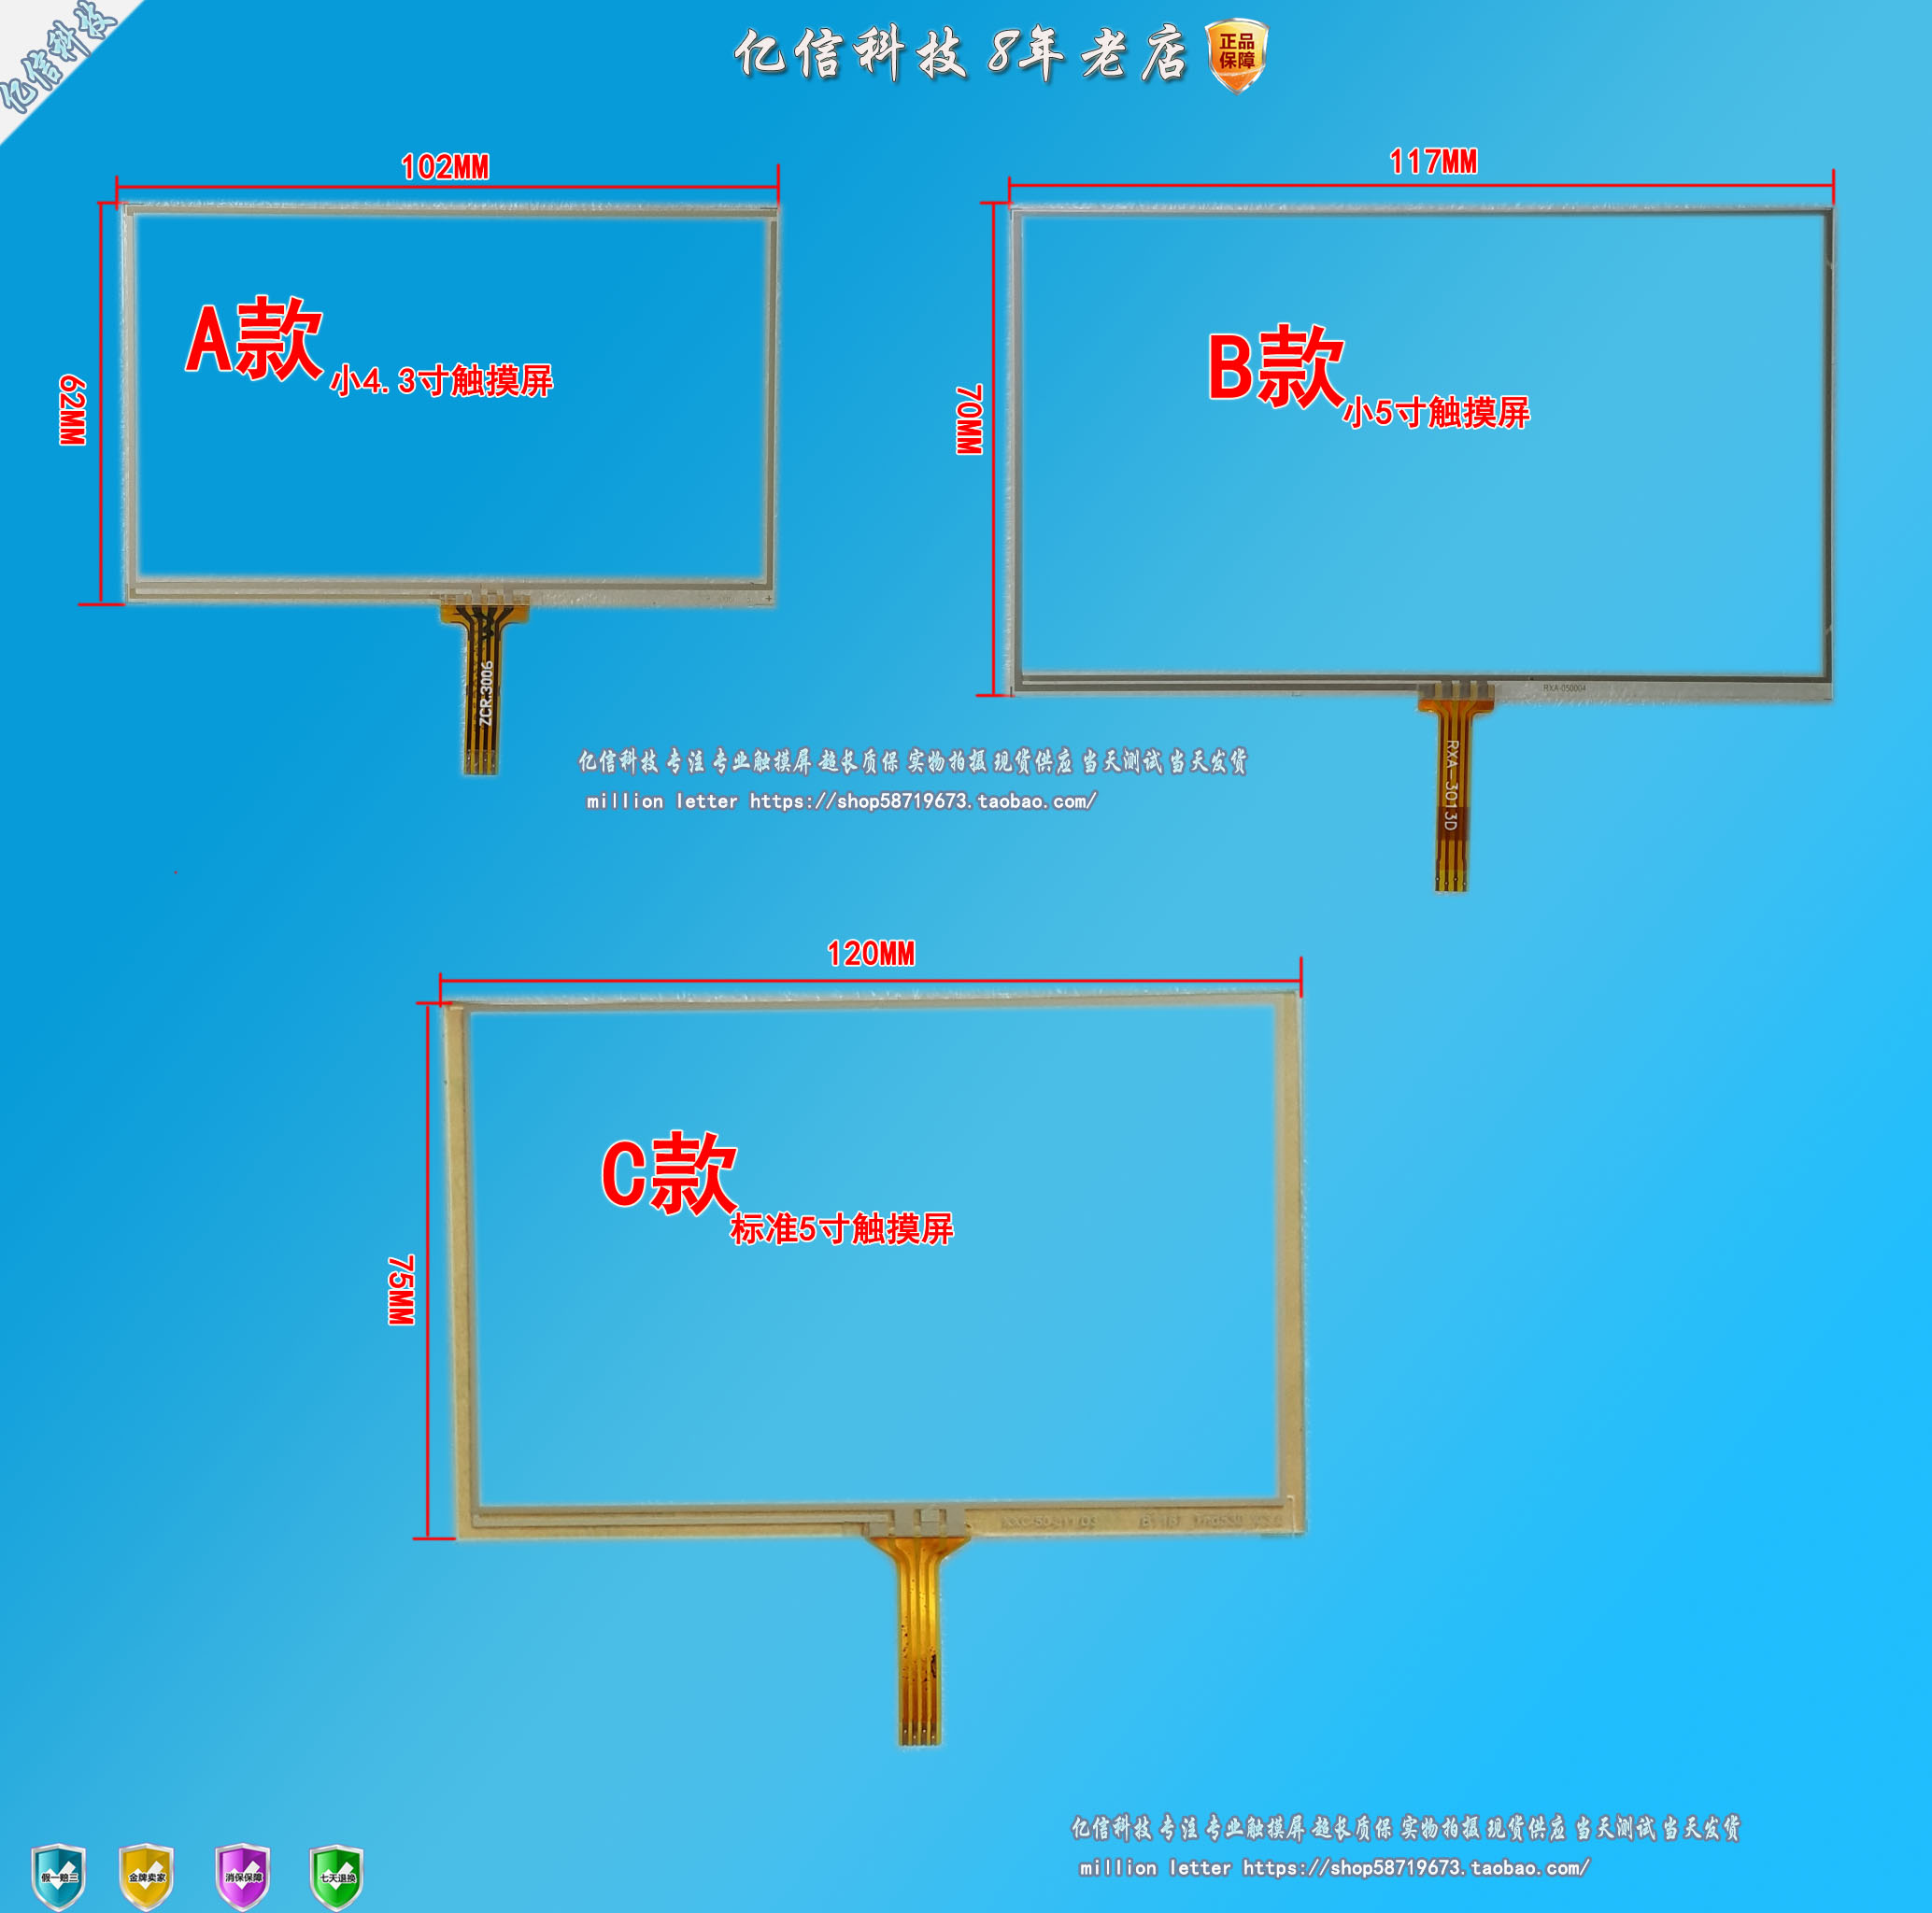 43 Inch 5 4 Wire Welding Resistance Screen Tablet Pc Digital Diagram Navigation Industrial Control Touch